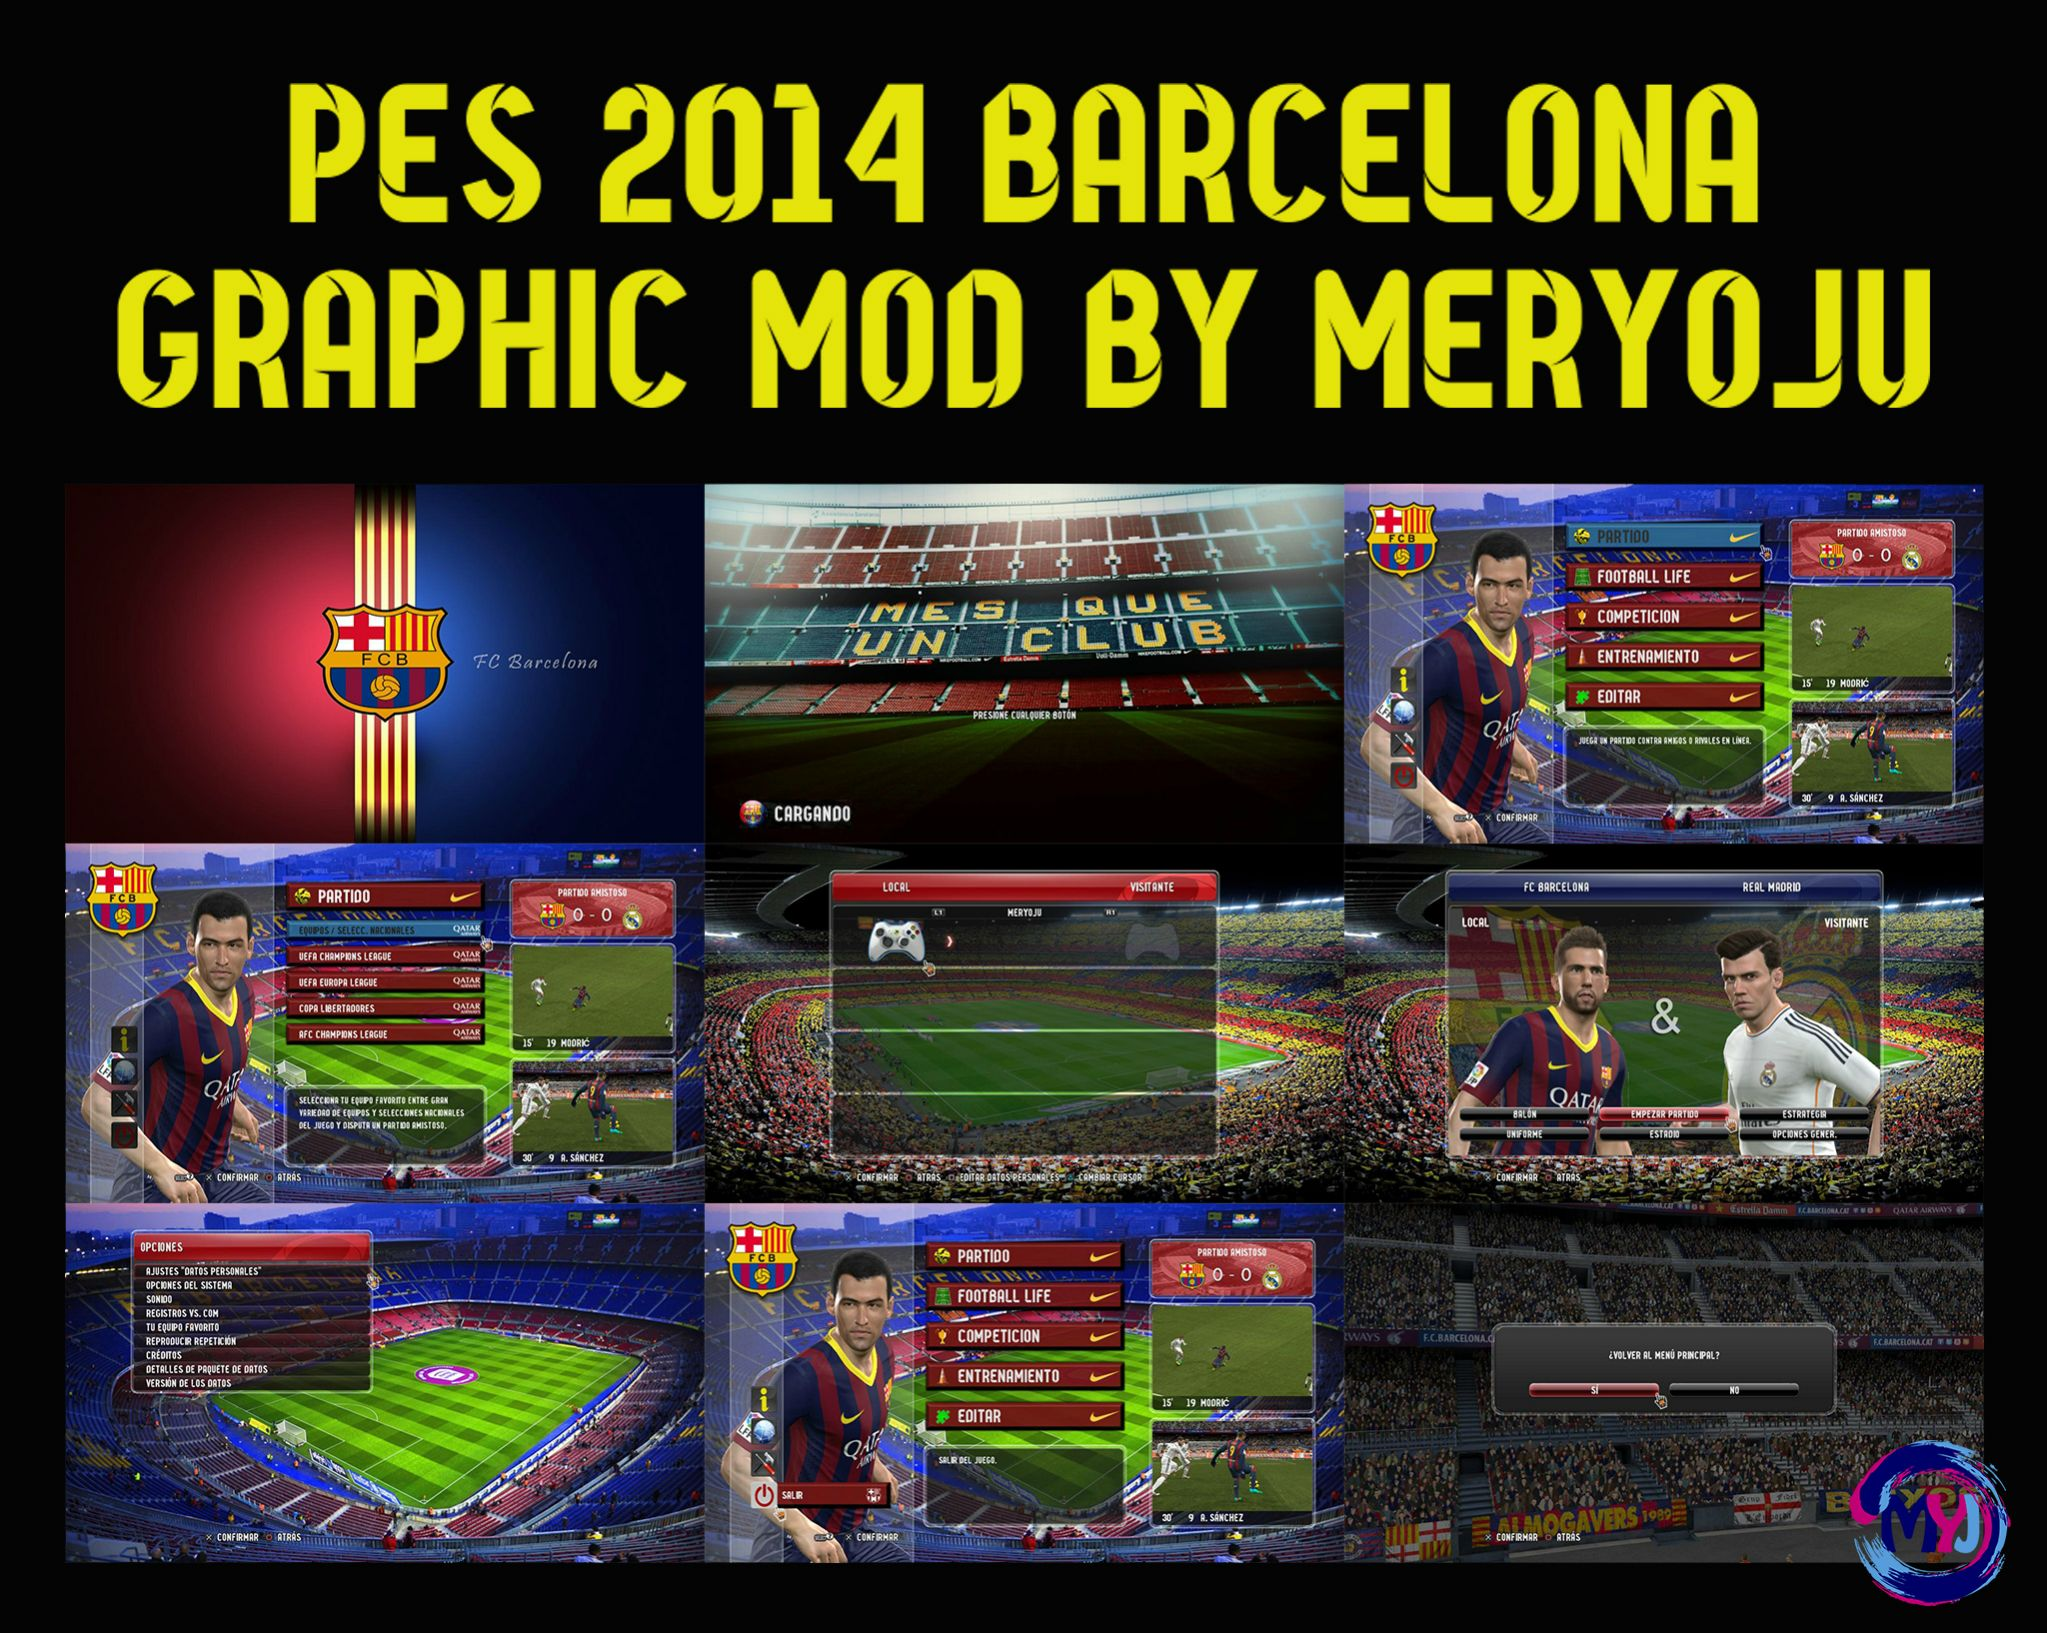 Barcelona Graphic Mod by Meryoju